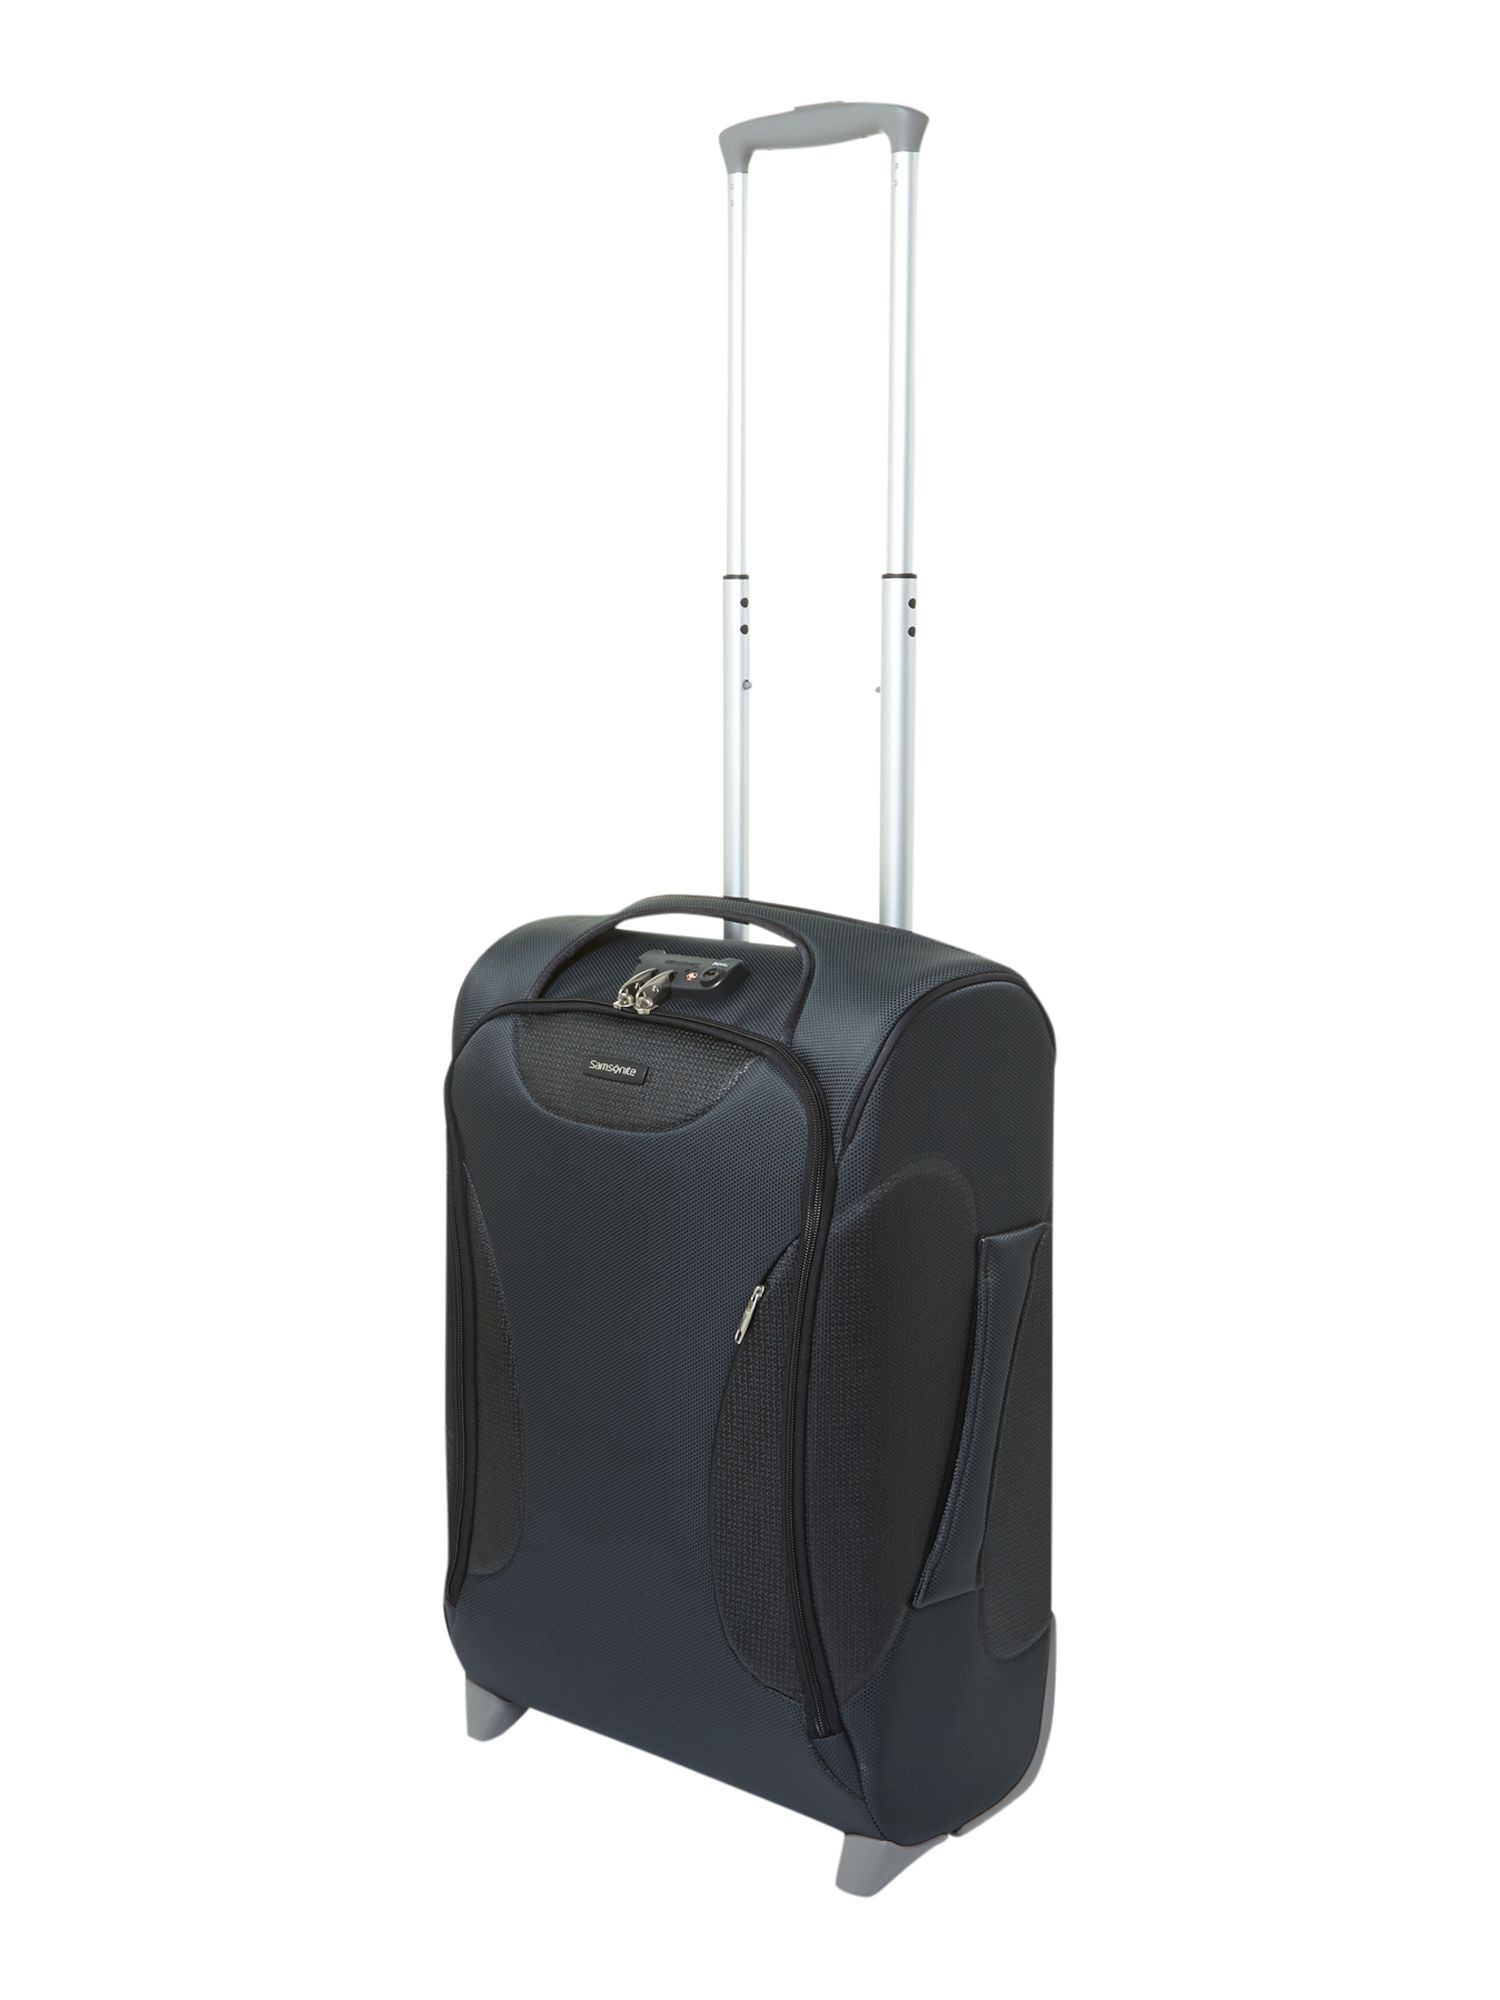 Panayio 55cm upright 2 wheeled case grey